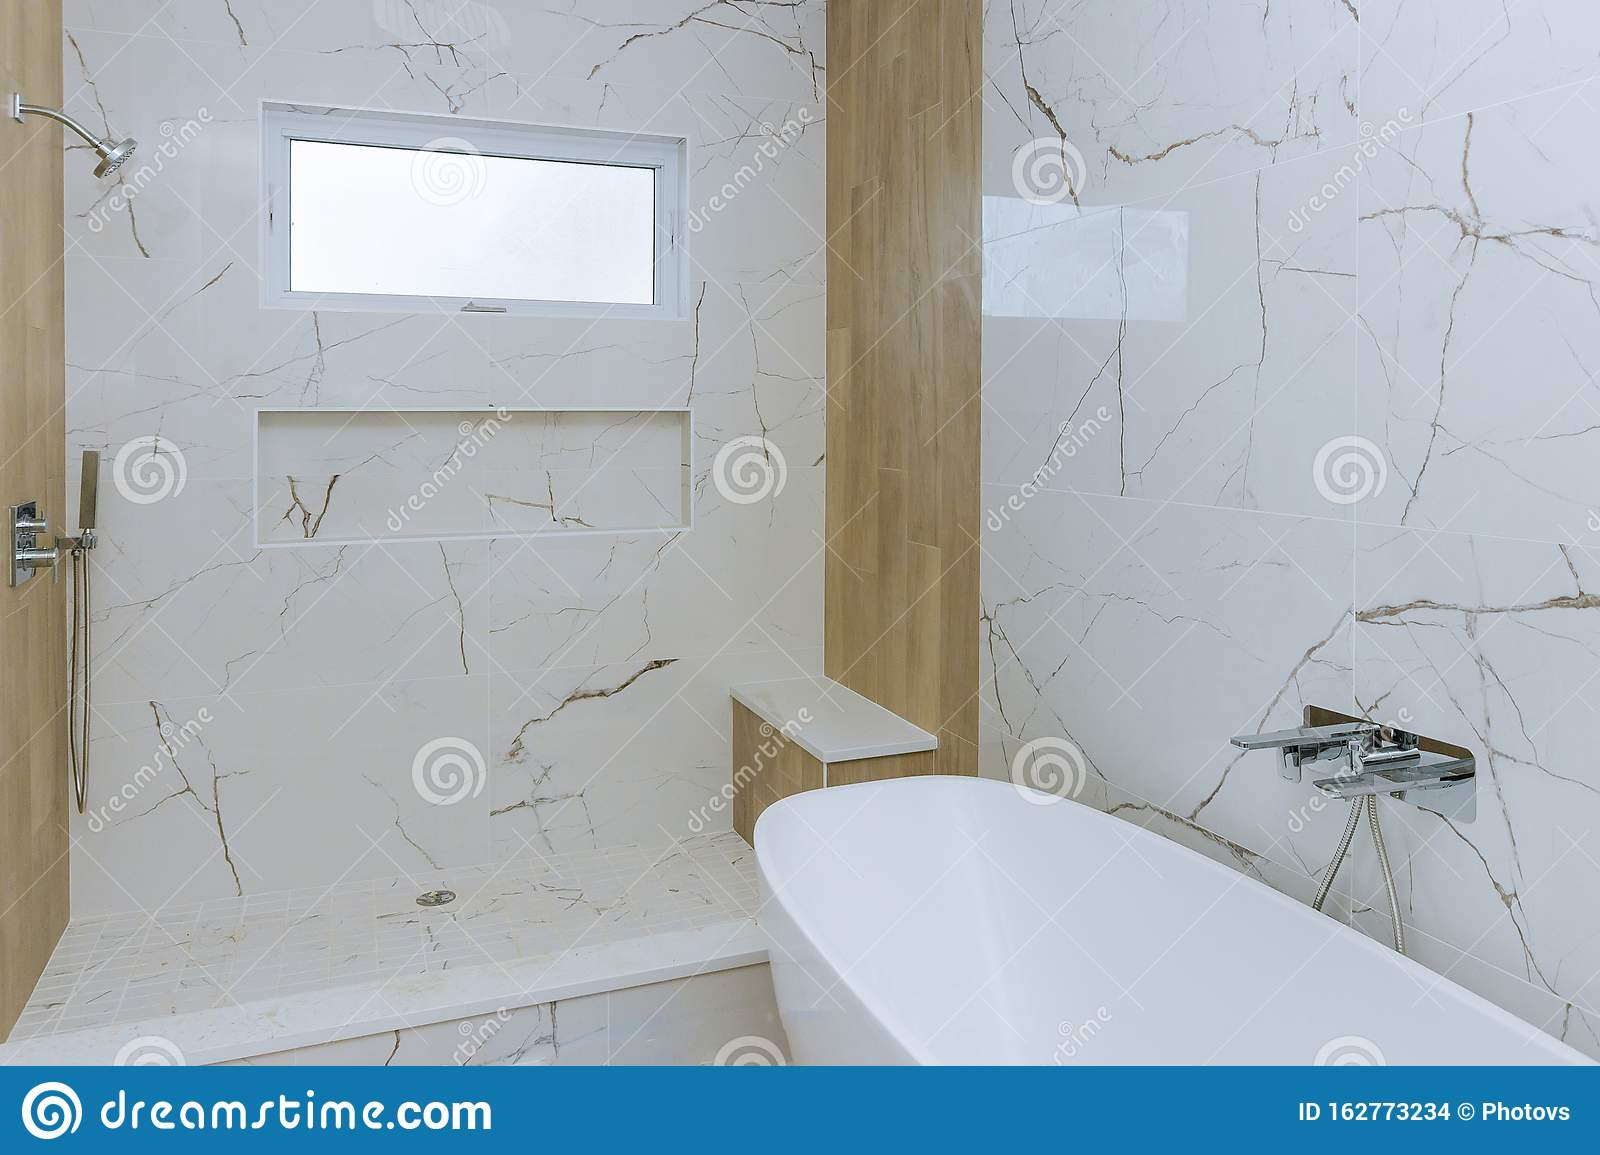 Modern Design Bathroom Interior An Open In Shower Stock Photo Image Of Modern Faucet 162773234